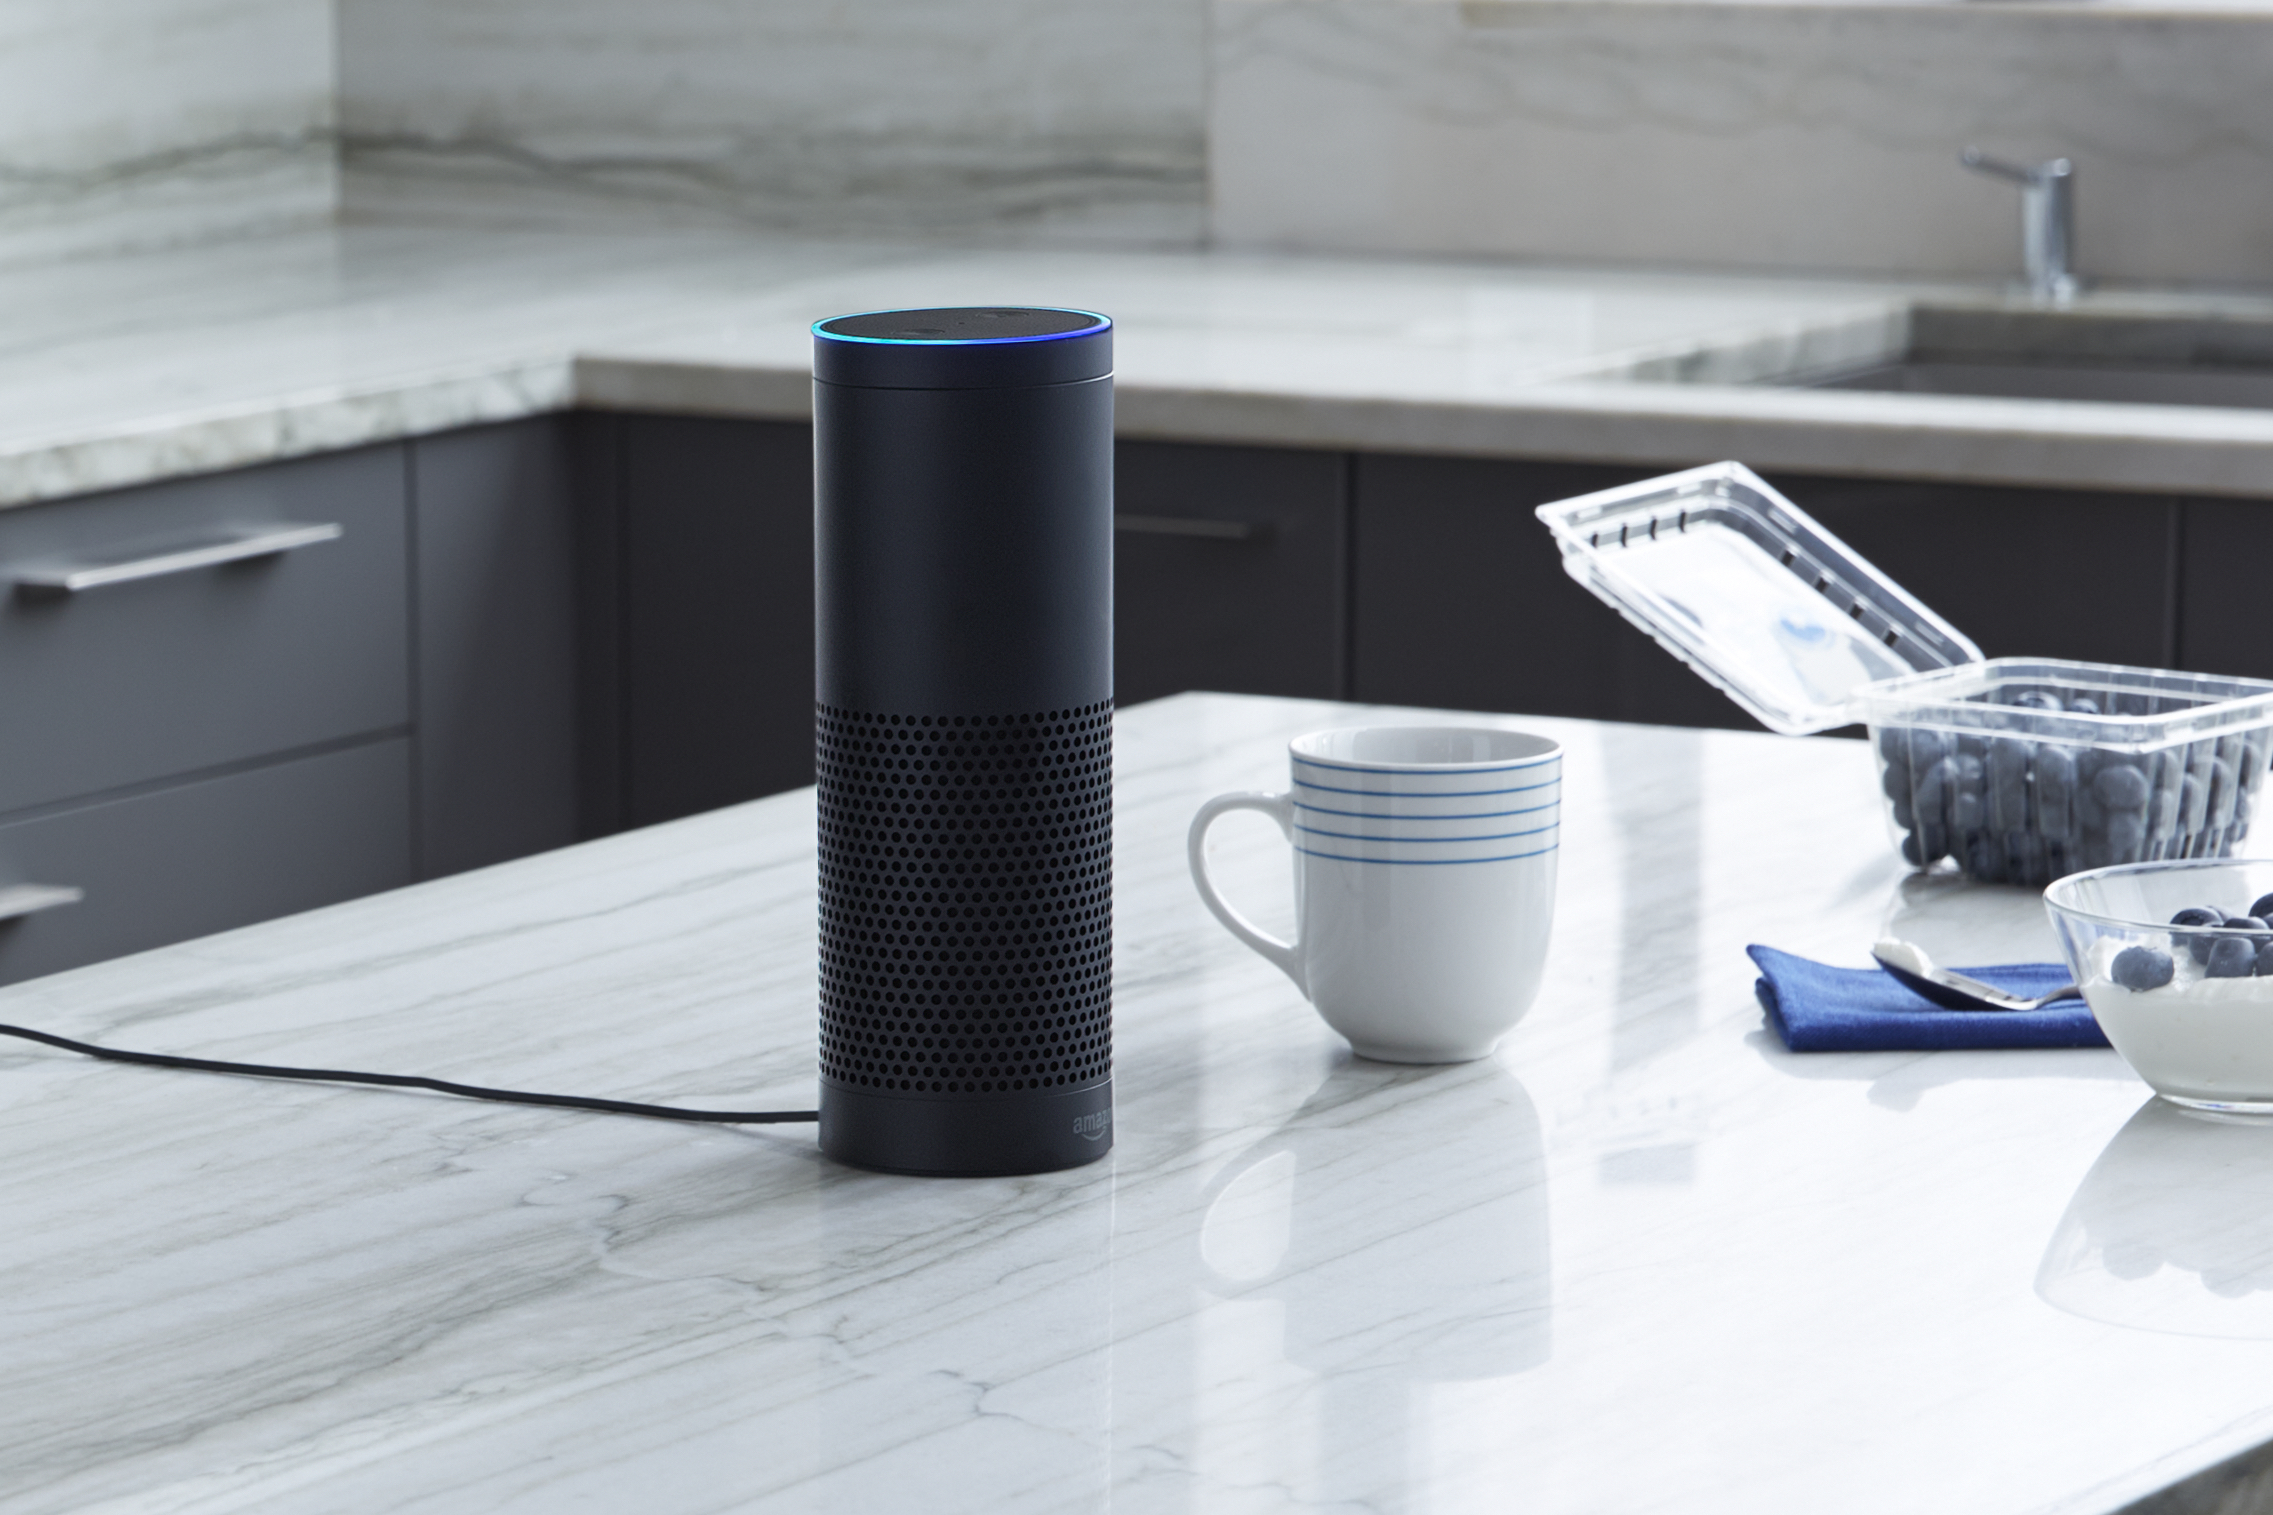 10 Examples of Content Marketing with Amazon Alexa